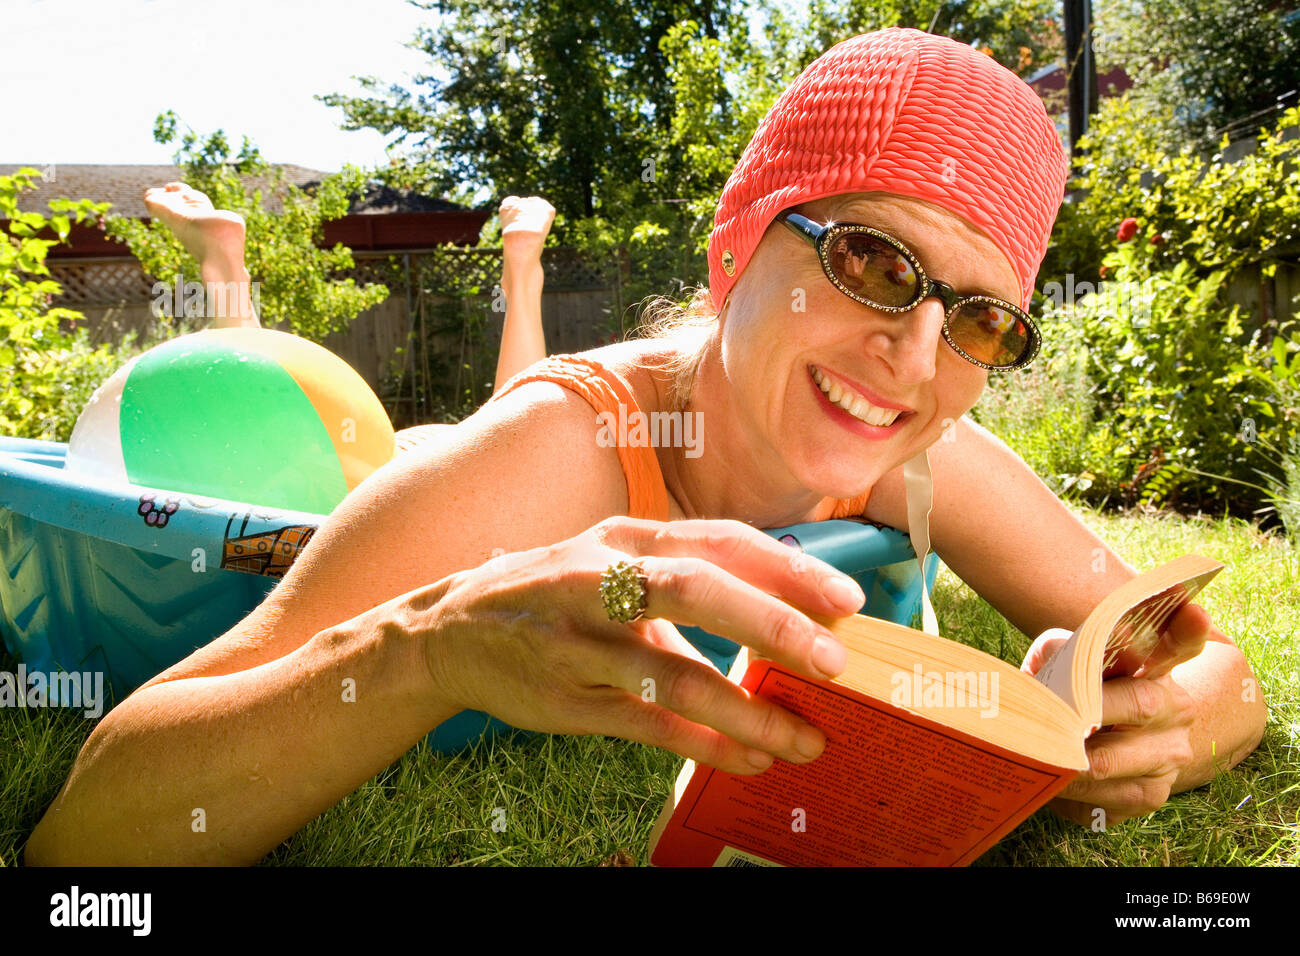 Woman reading a book in a wading pool - Stock Image